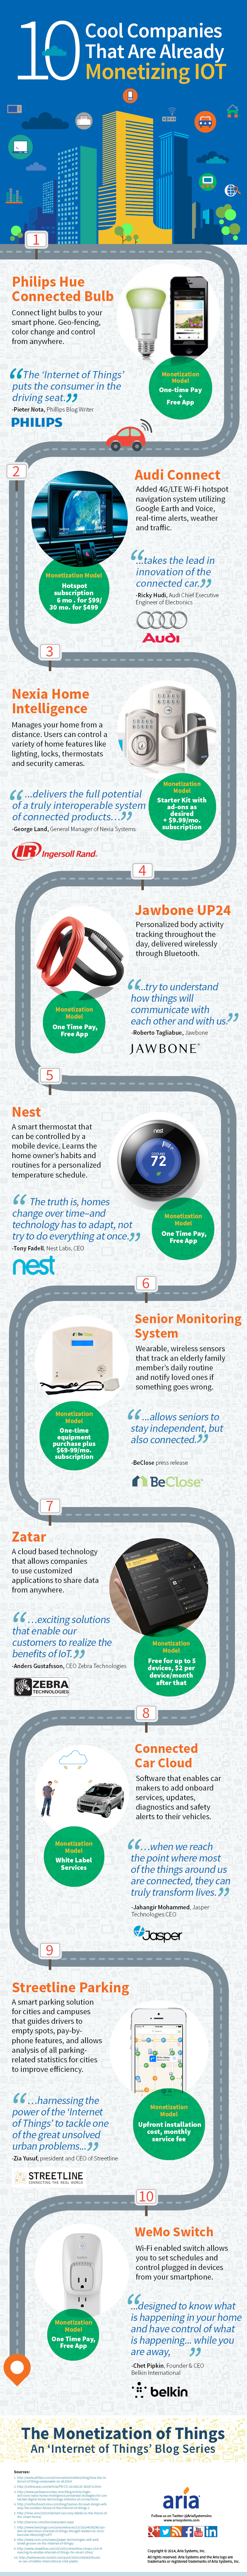 Iot_Infographic Final_V2